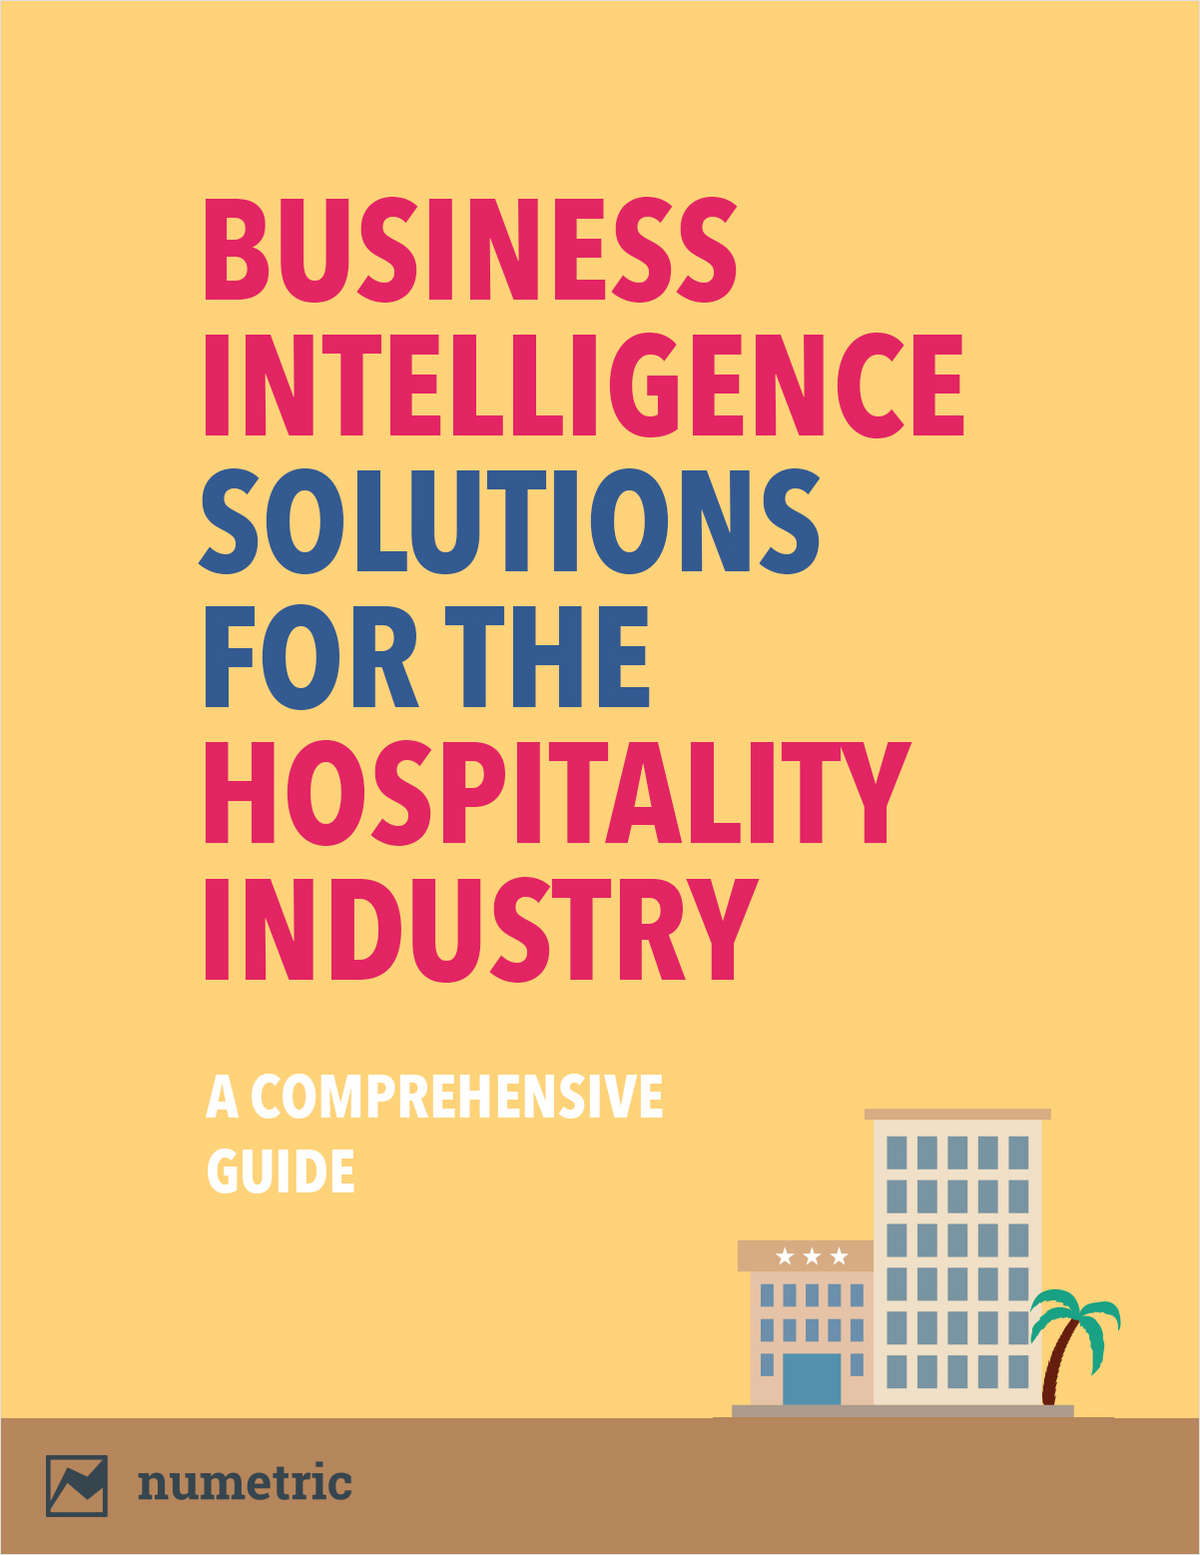 Hospitality Industry, Meet Business Intelligence